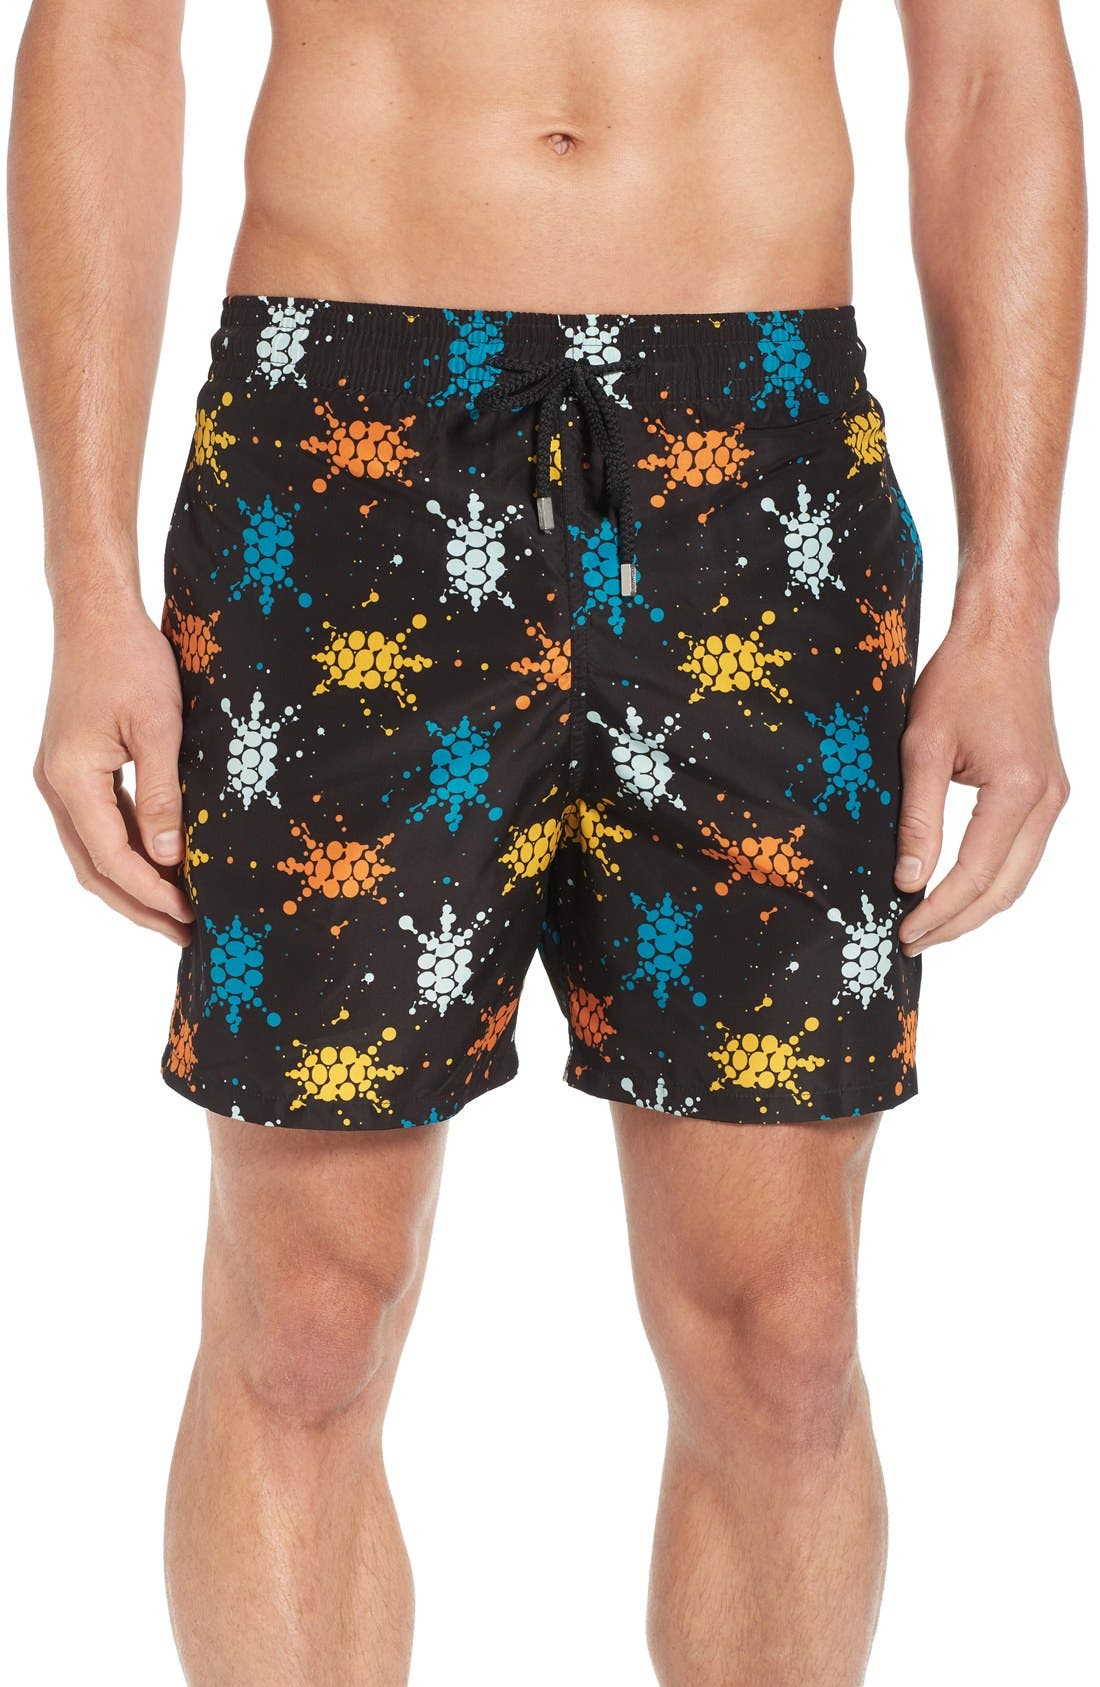 Japan Turtles Print Swim Trunks,                             Main thumbnail 1, color,                             BLACK